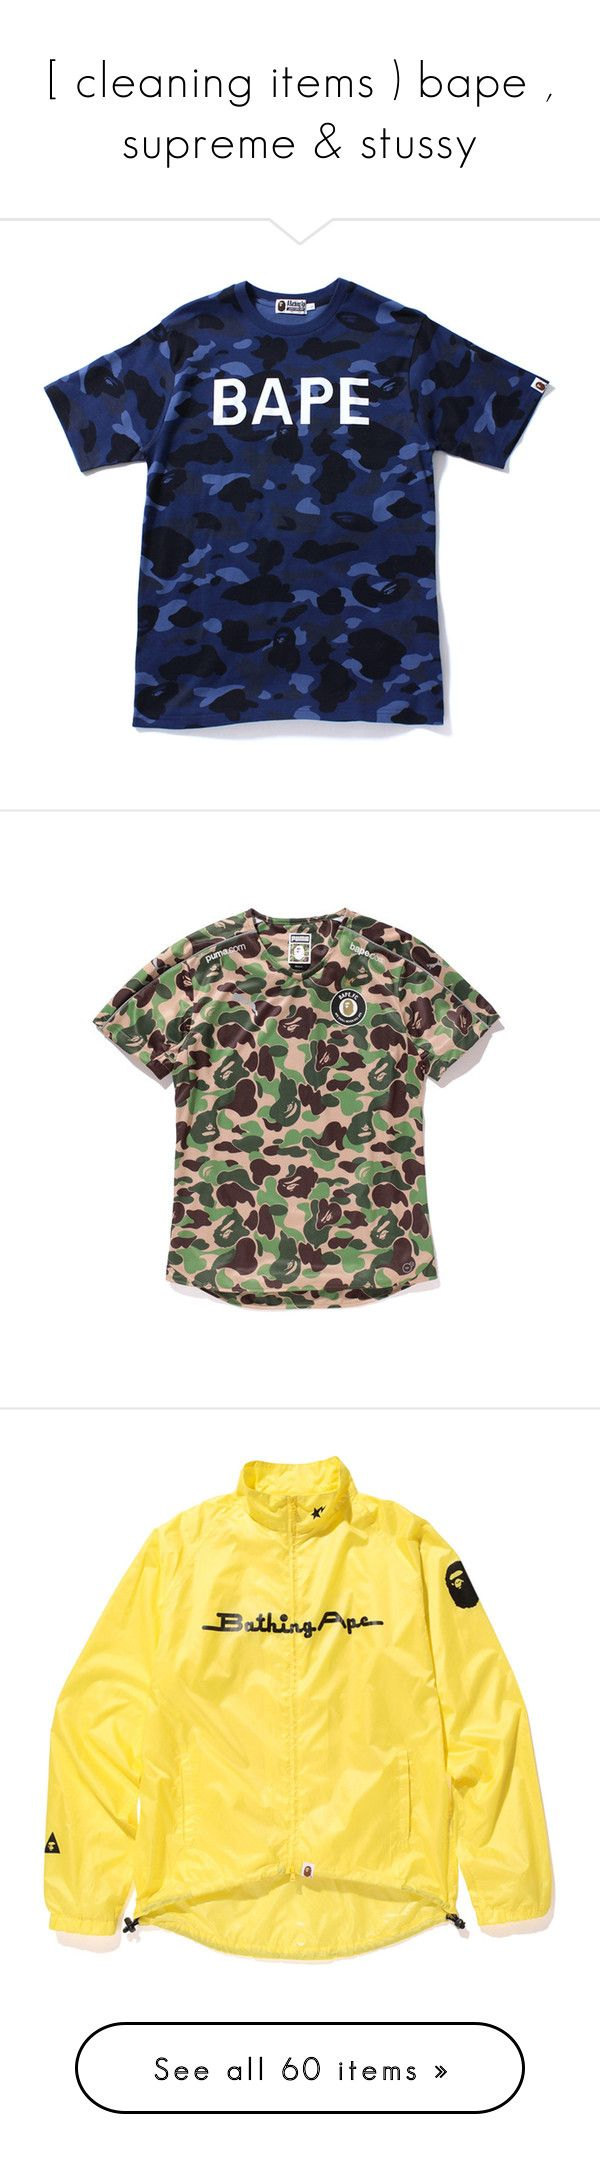 """""""[ cleaning items ) bape , supreme & stussy"""" by o-ndulado ❤ liked on Polyvore featuring tops, t-shirts, shirts, camo tee, blue camo t shirts, blue camouflage shirts, camo tee-shirt, blue shirt, activewear and polyester shirt"""